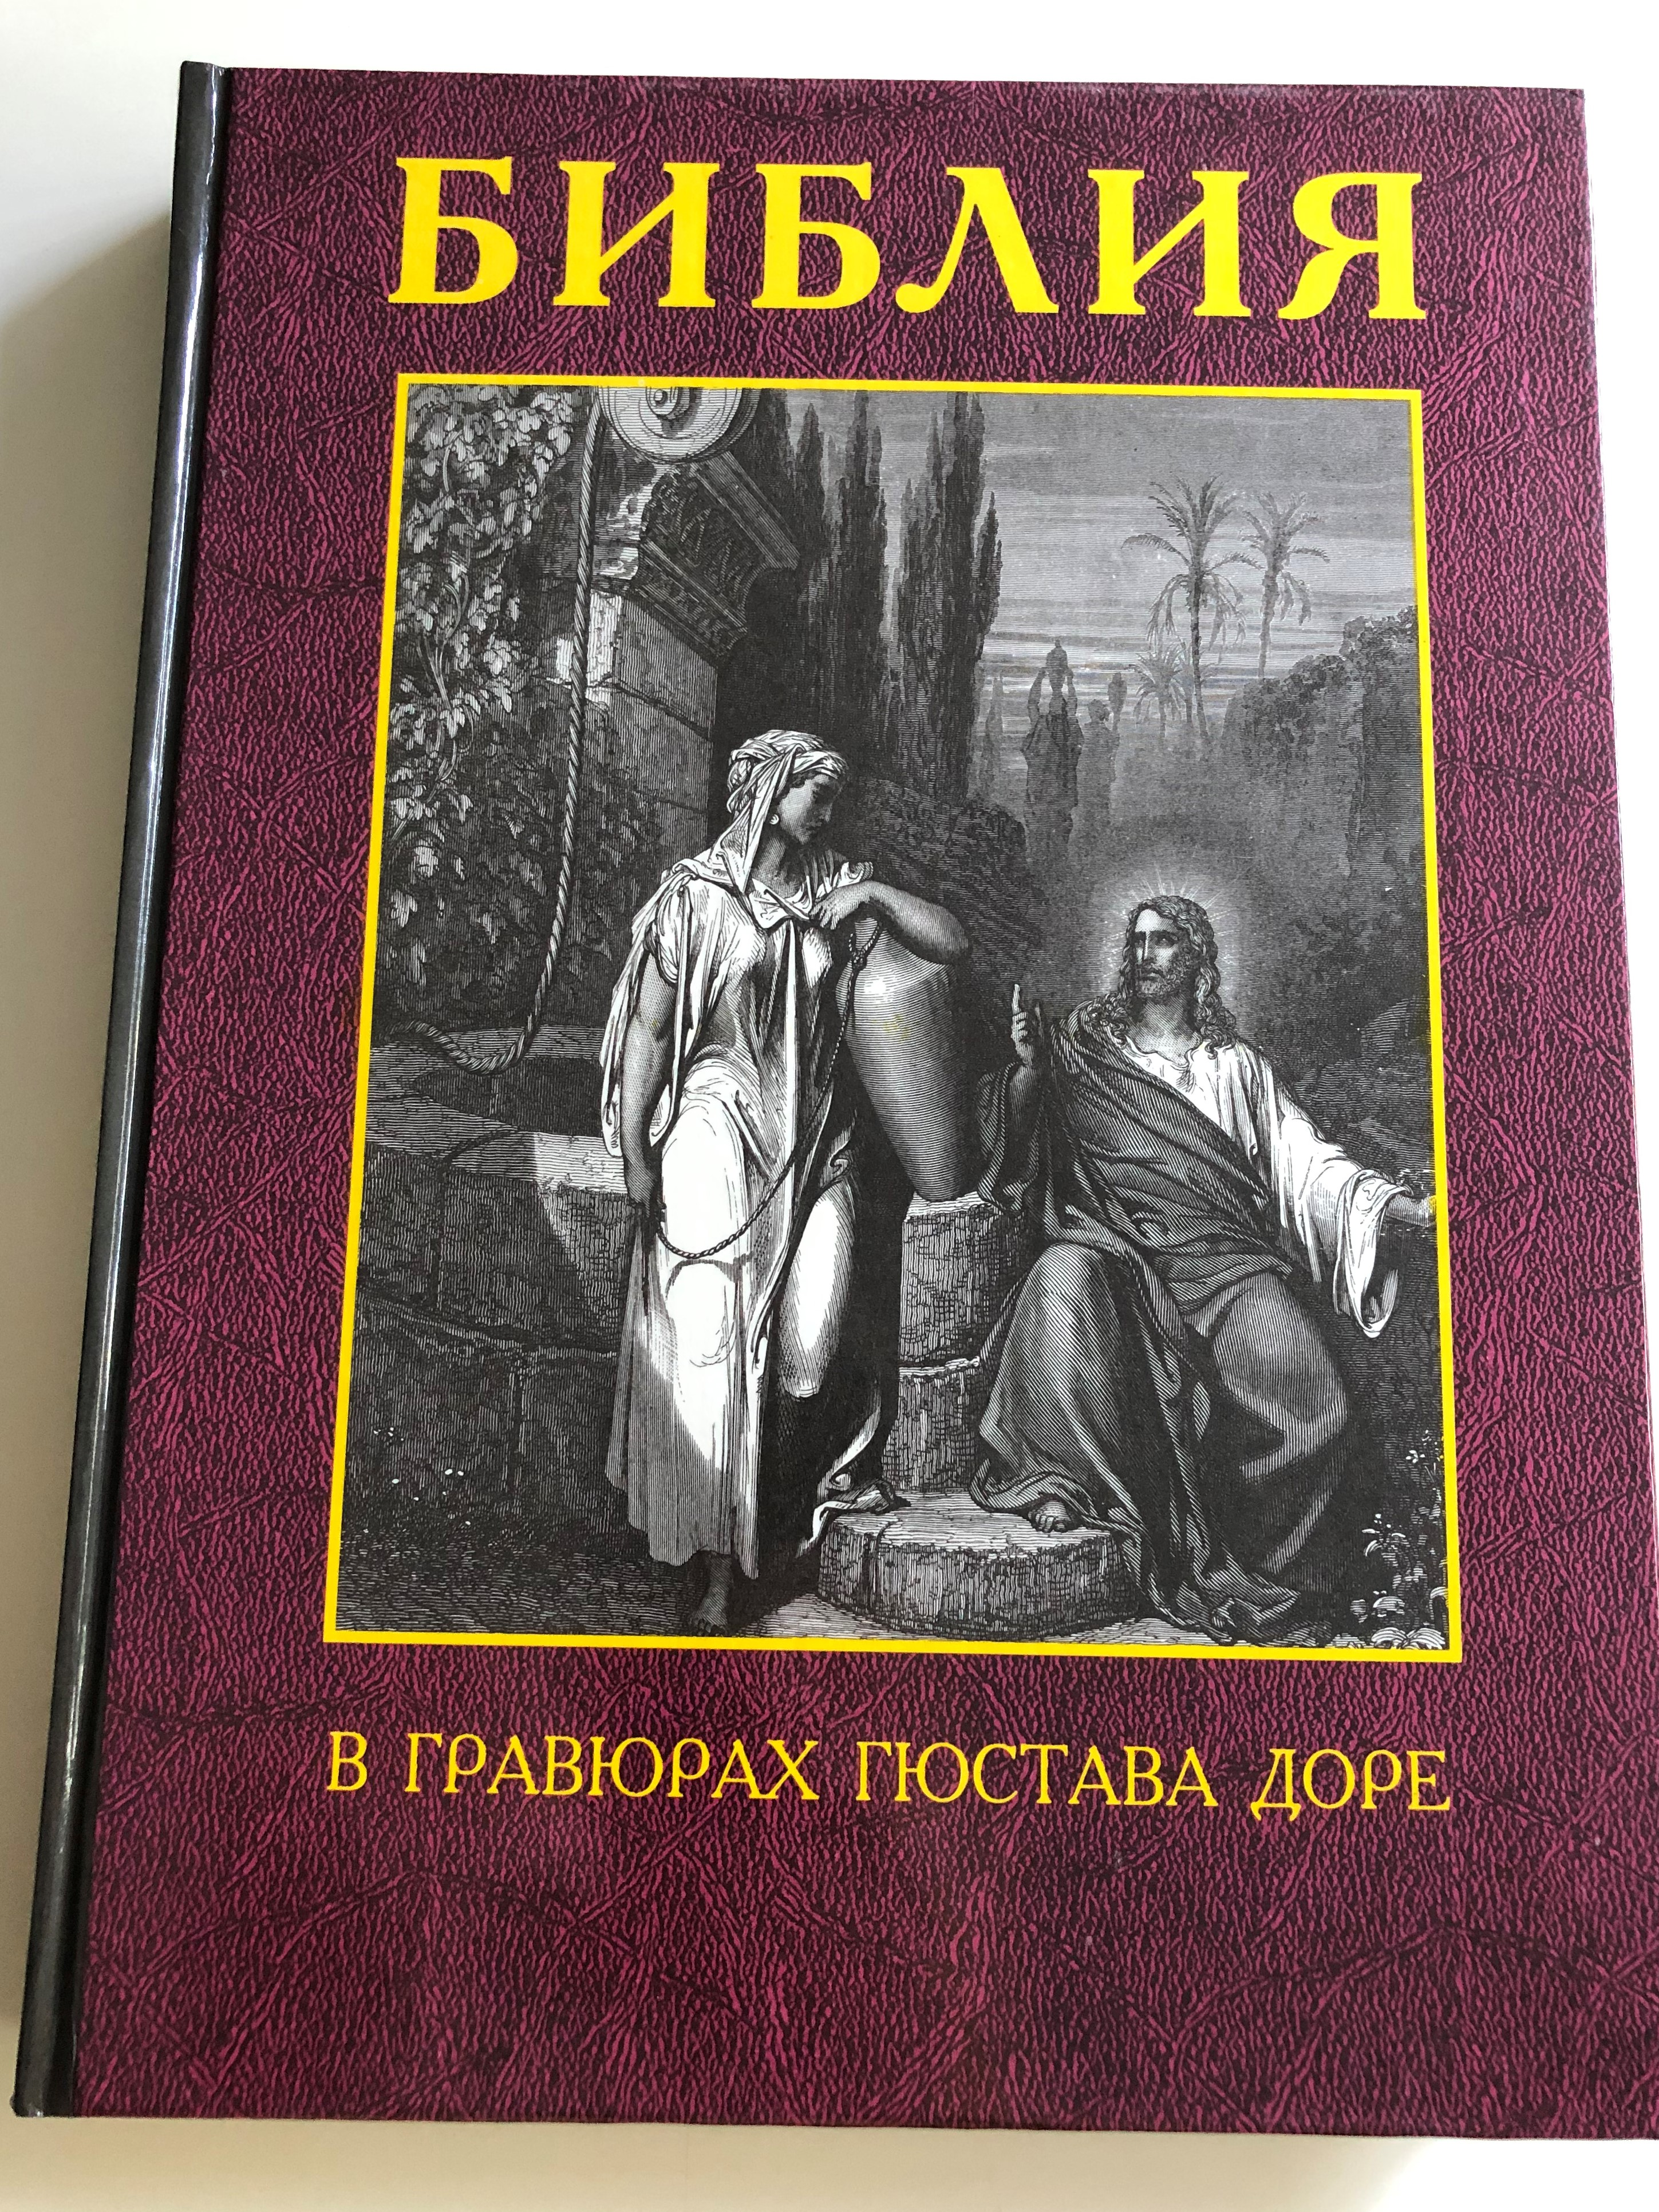 -russian-language-bible-with-gustav-dore-s-illustrations-with-bible-text-from-the-sinodal-translation-hardcover-1995-russian-bible-society-1-.jpg